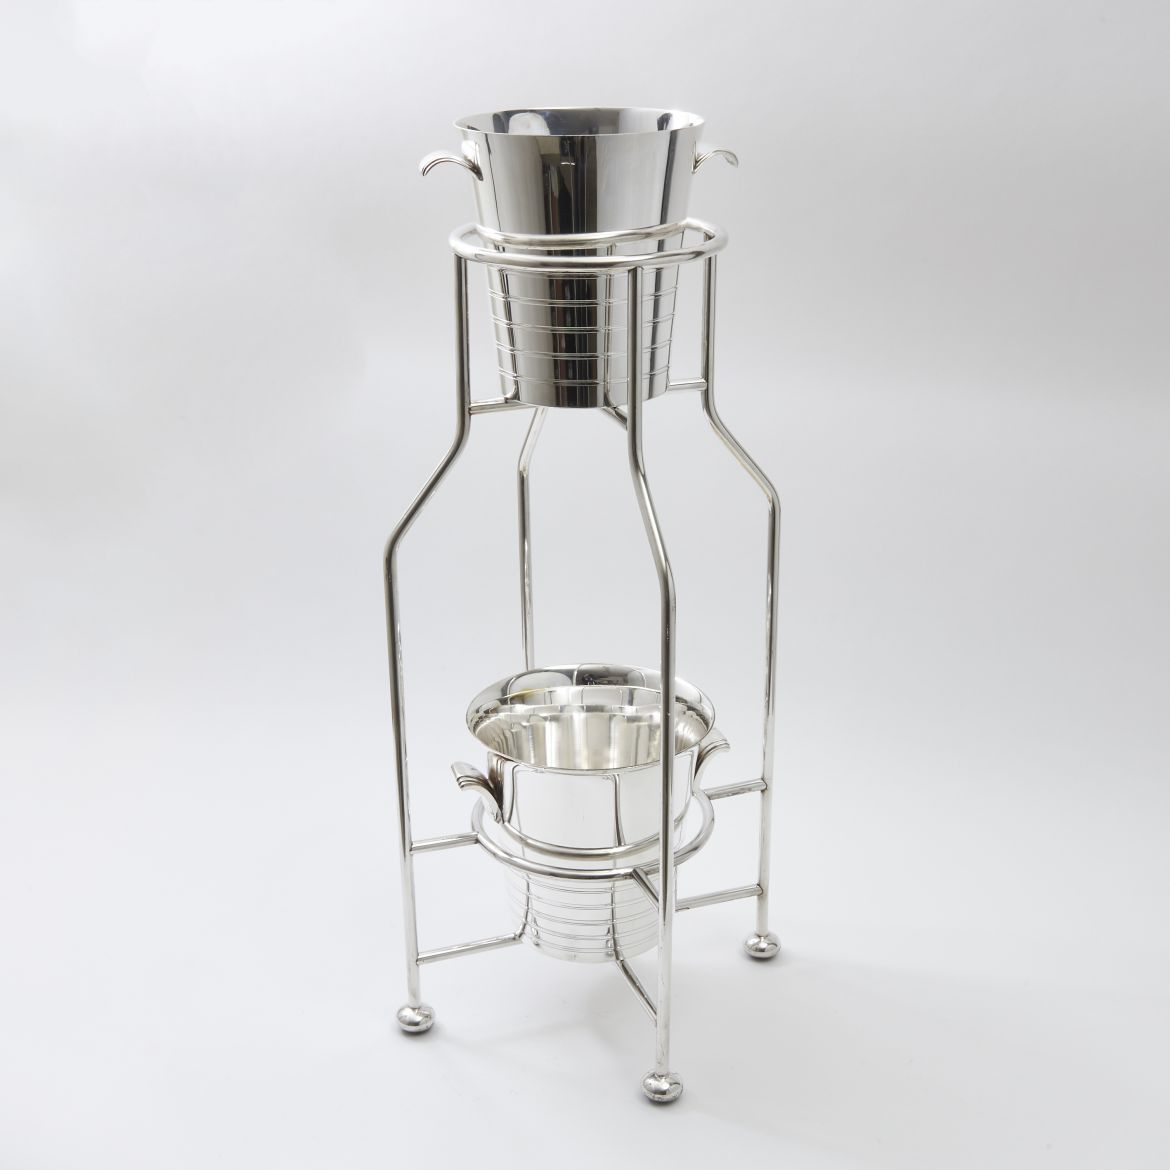 Two Tier Ice Buckets on Stand